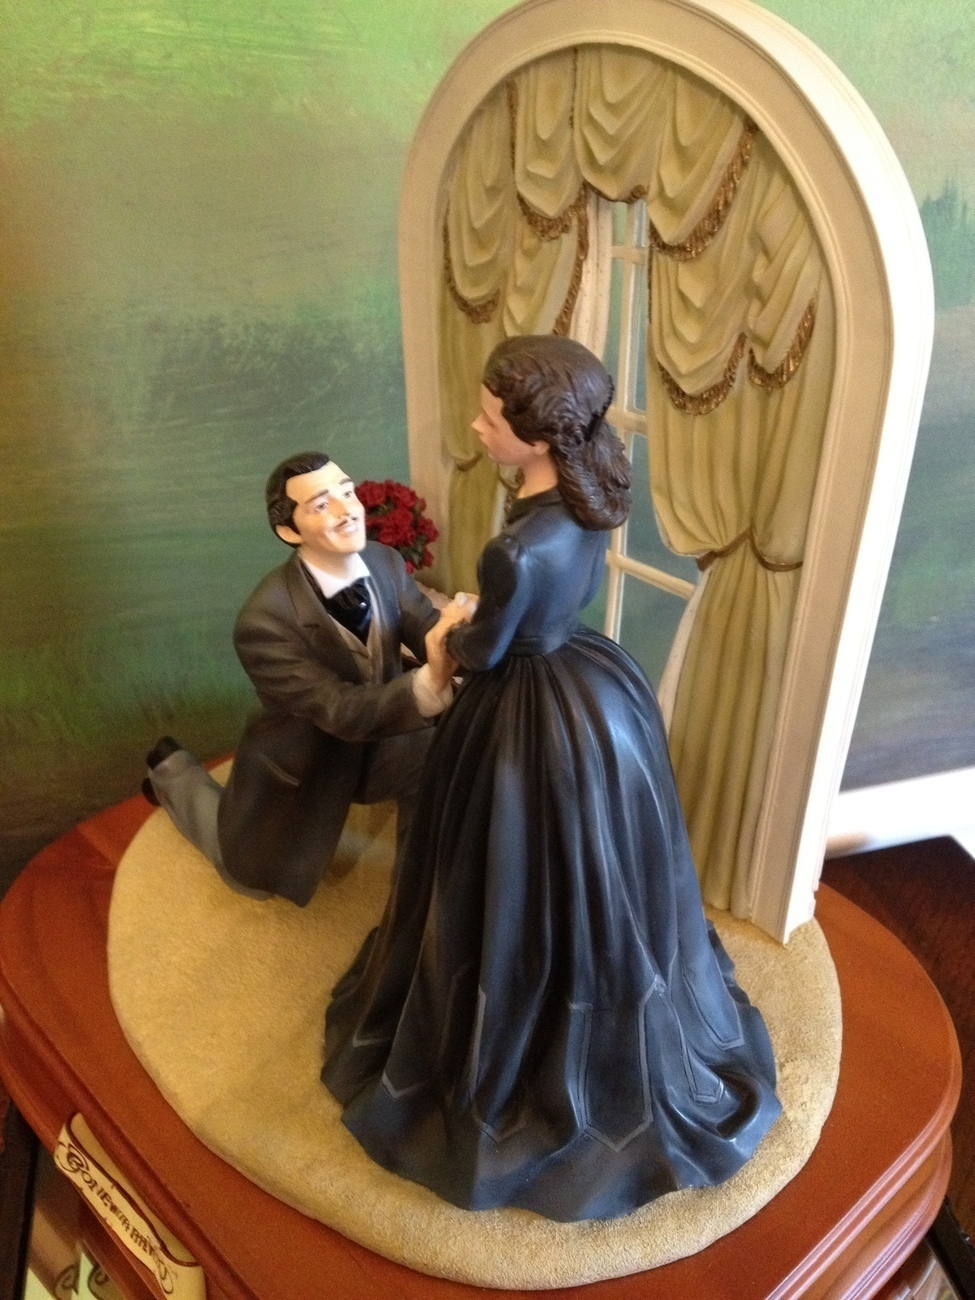 San Francisco Music Box Co - Rhett & Scarlett The Proposal Gone With the Wind